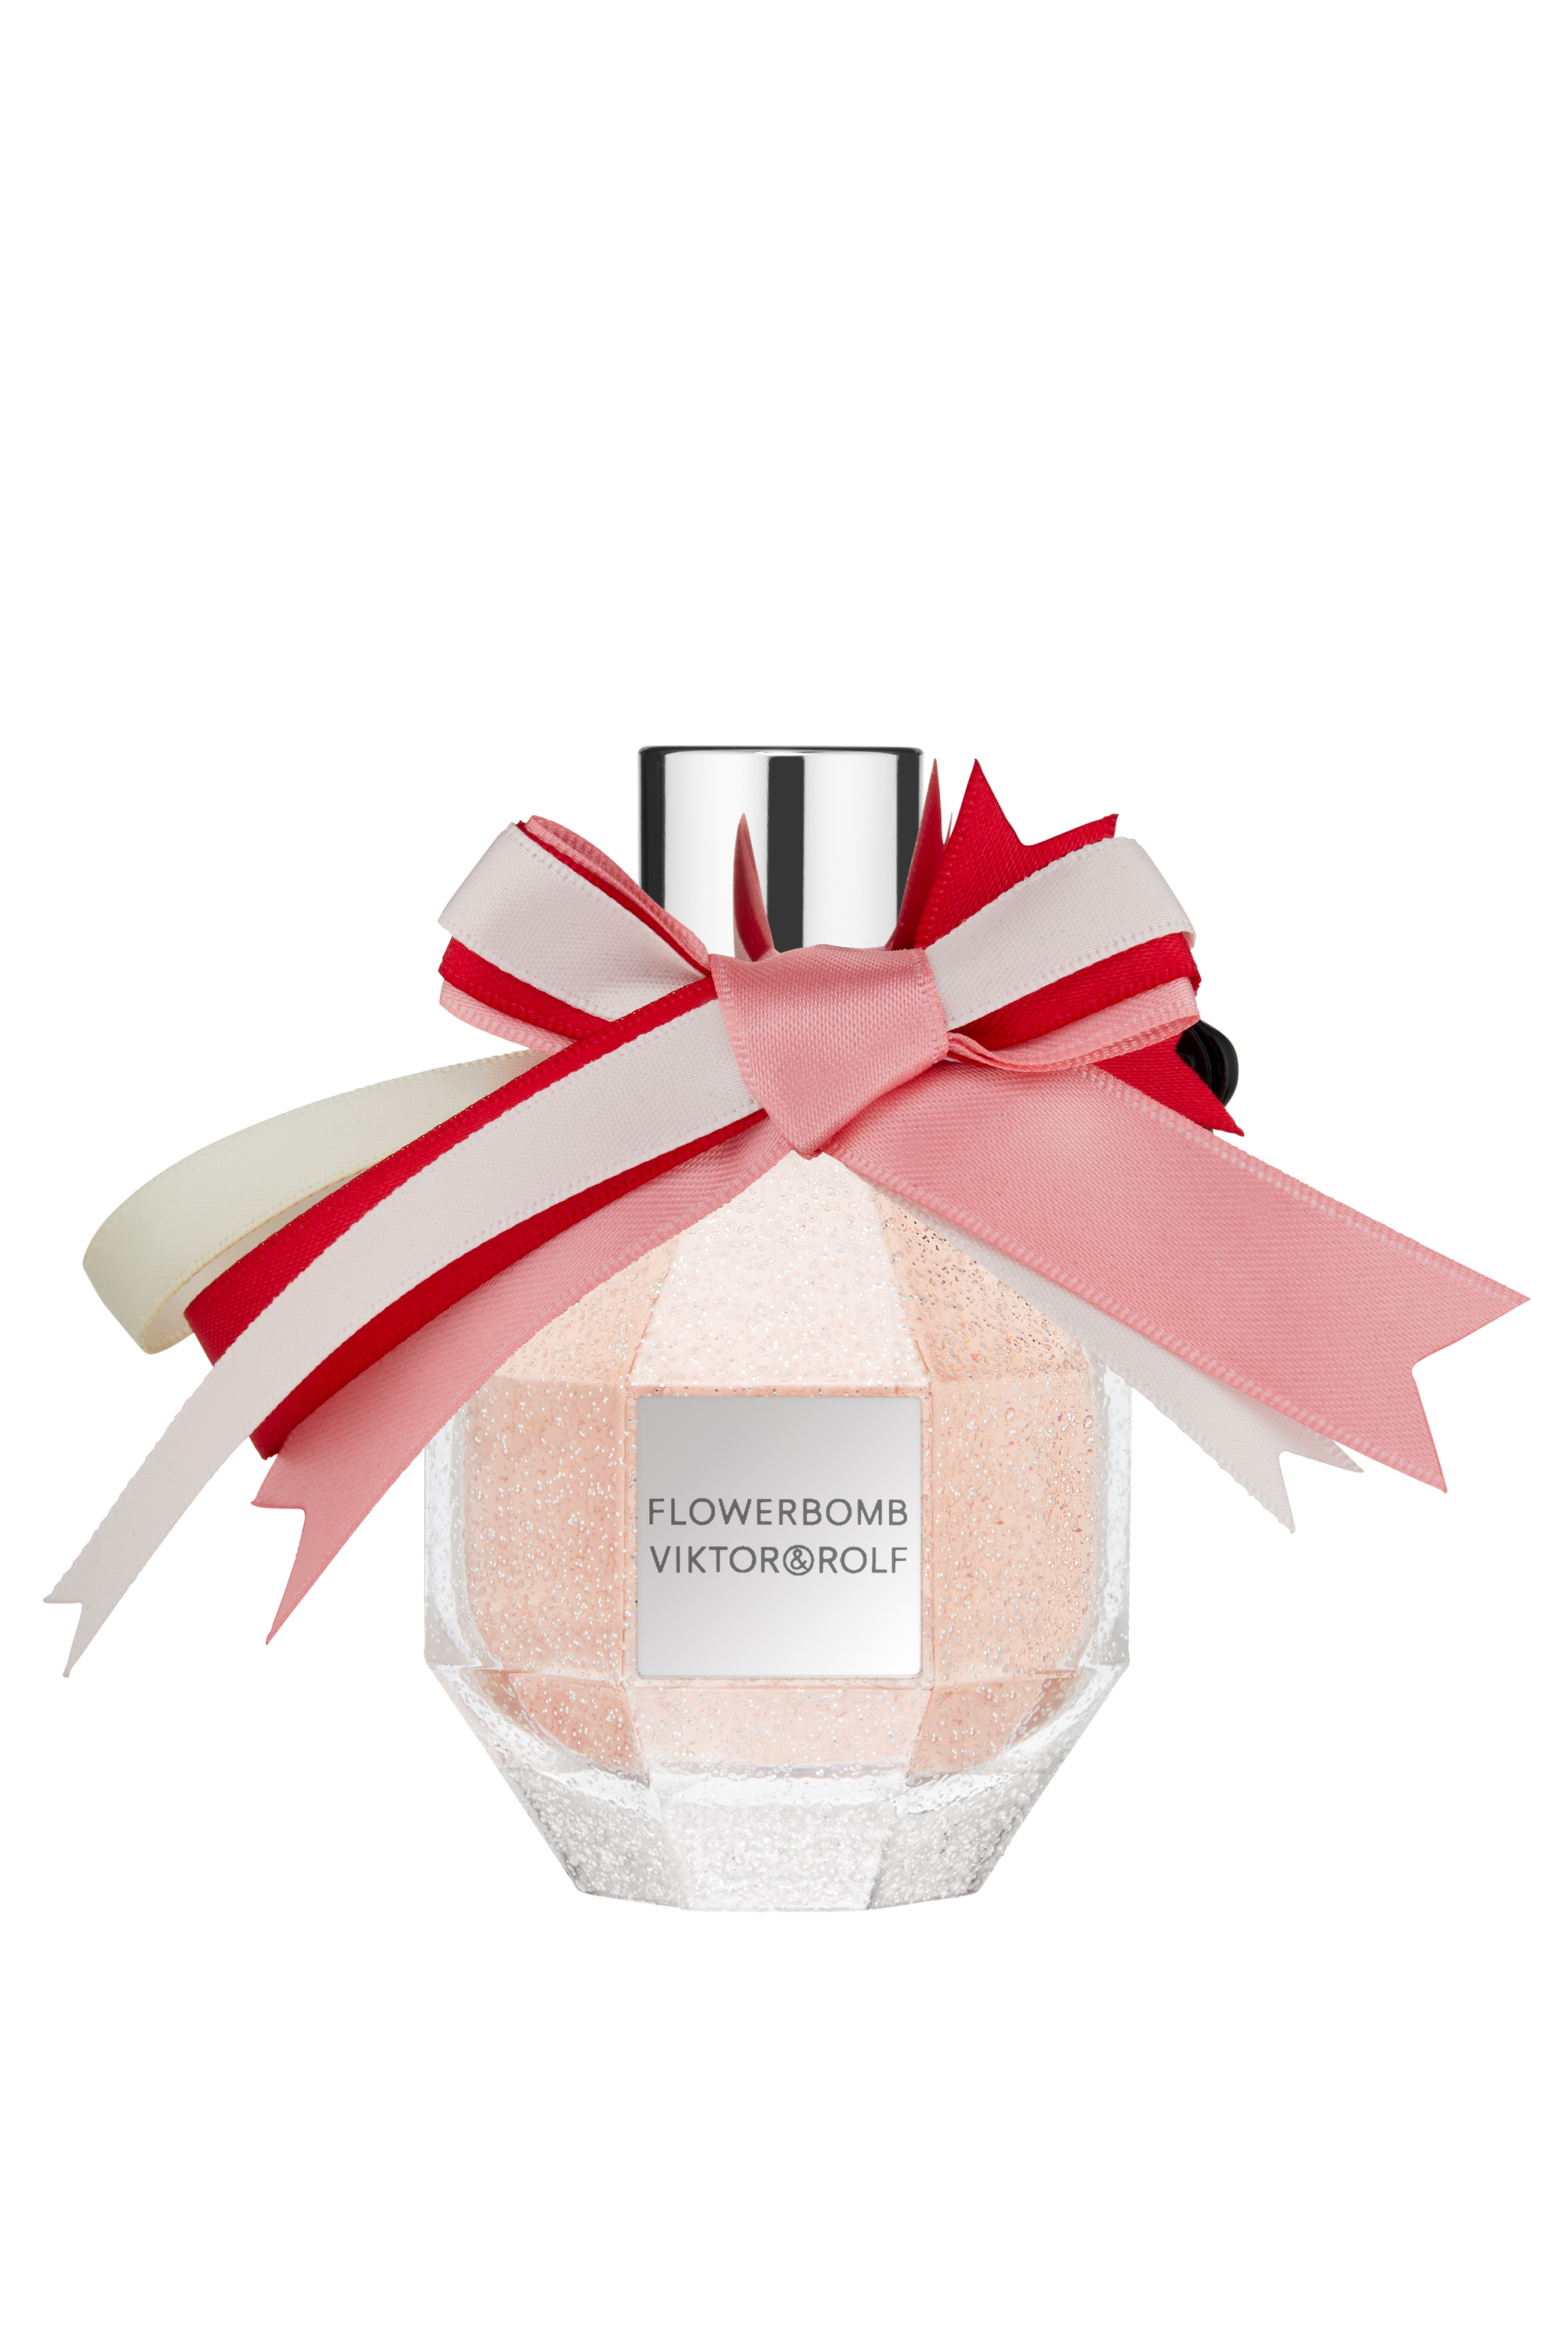 07_FlowerBomb_Clear_Red_Bow_Front_106.jpg